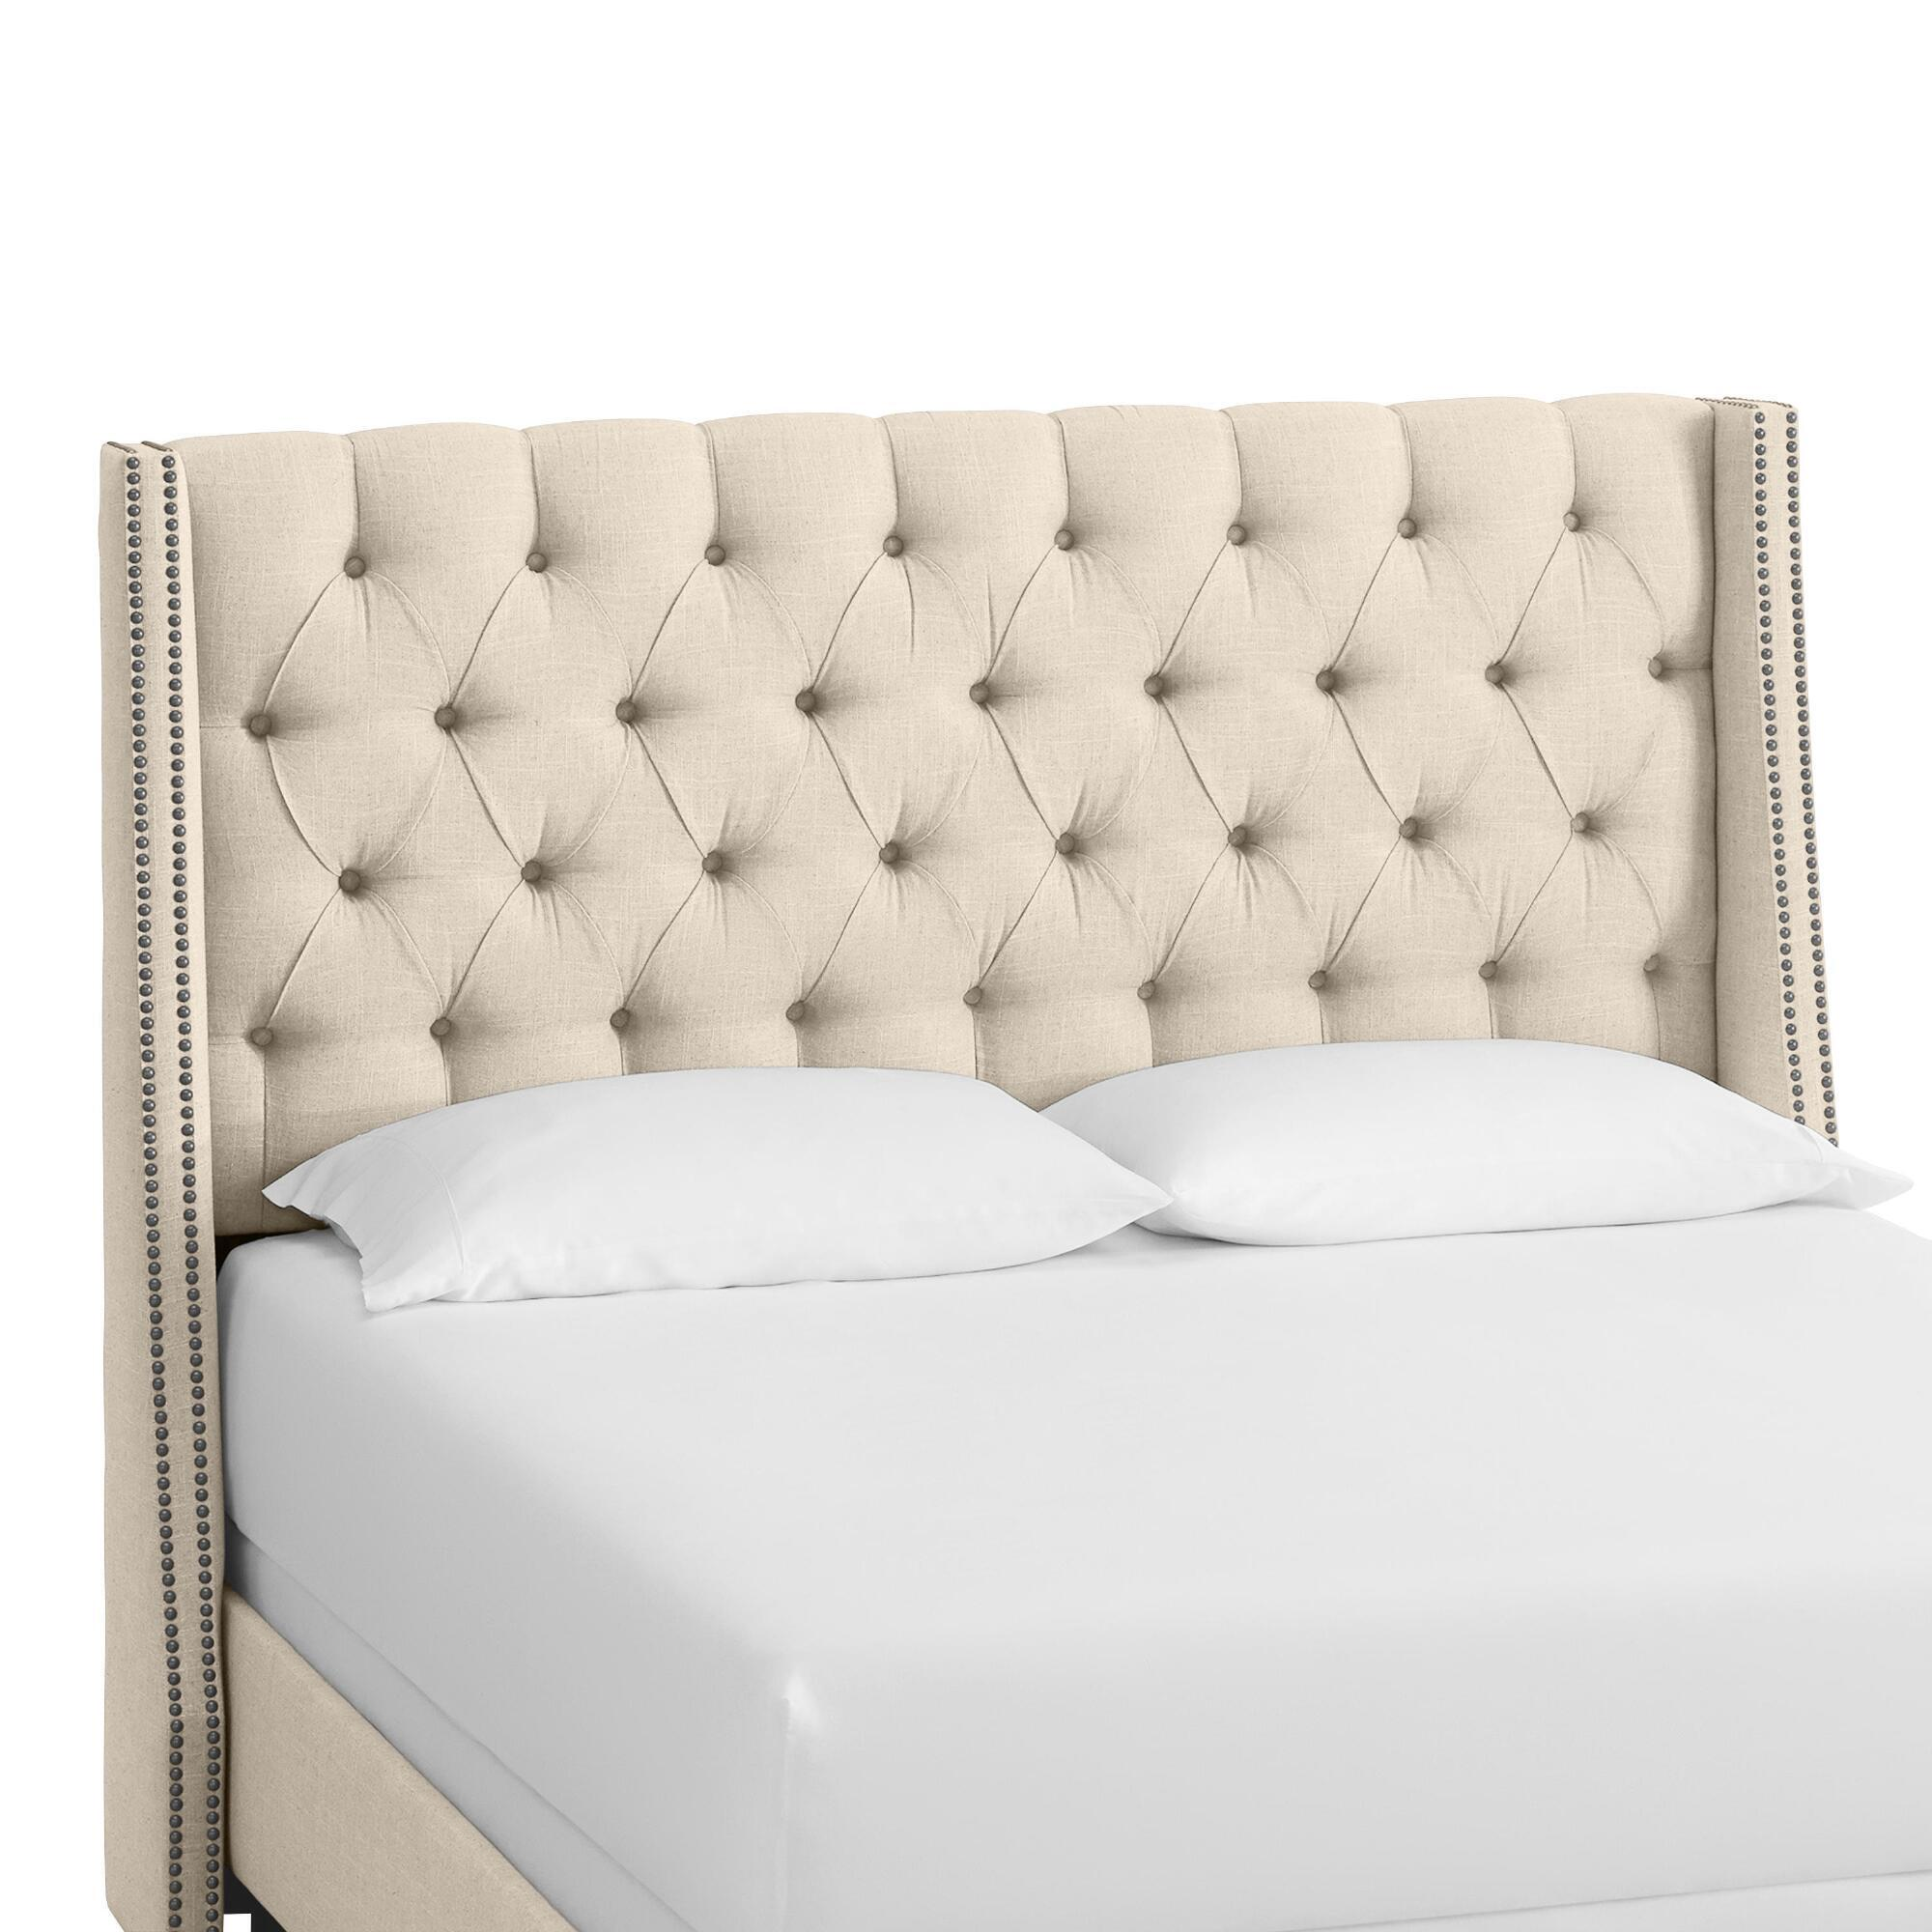 Linen Kellerman Upholstered Bed: Natural - Fabric - Full Bed by World Market Talc/Full